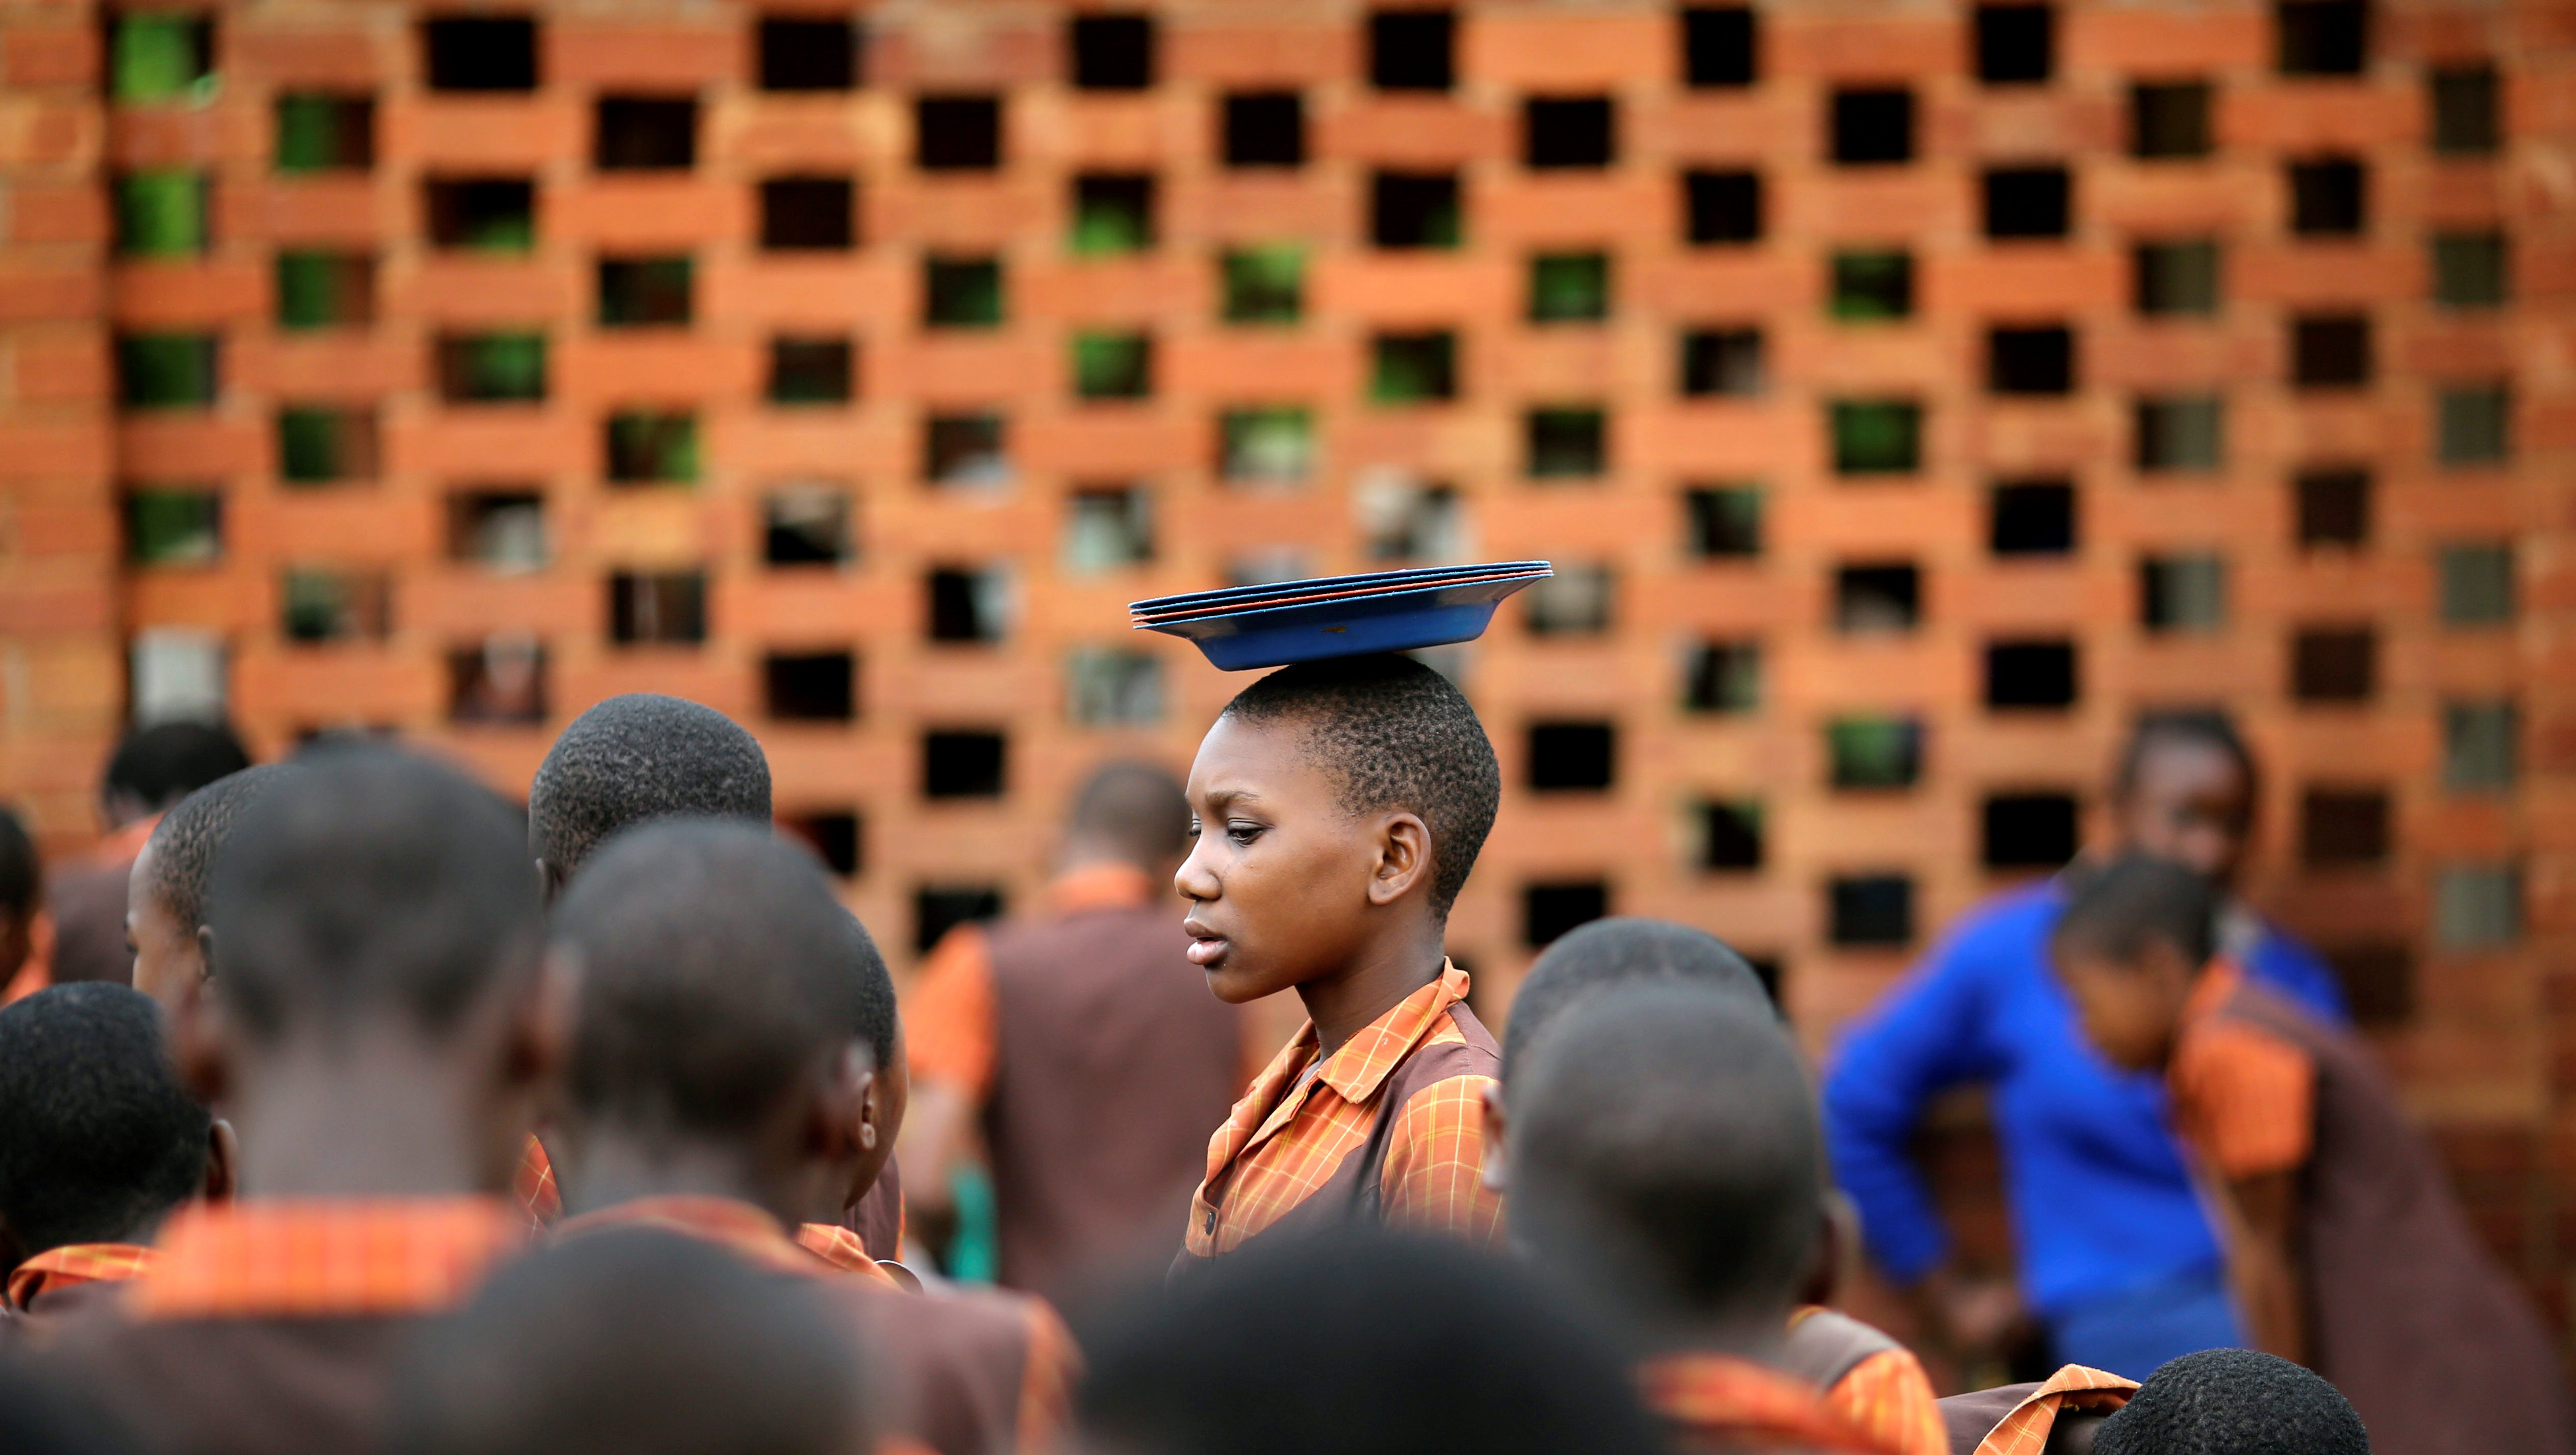 A school child carries plates on her head at Chishawasha Mission Primary School, 27 km east of the capital Harare, Zimbabwe, November 26, 2017.